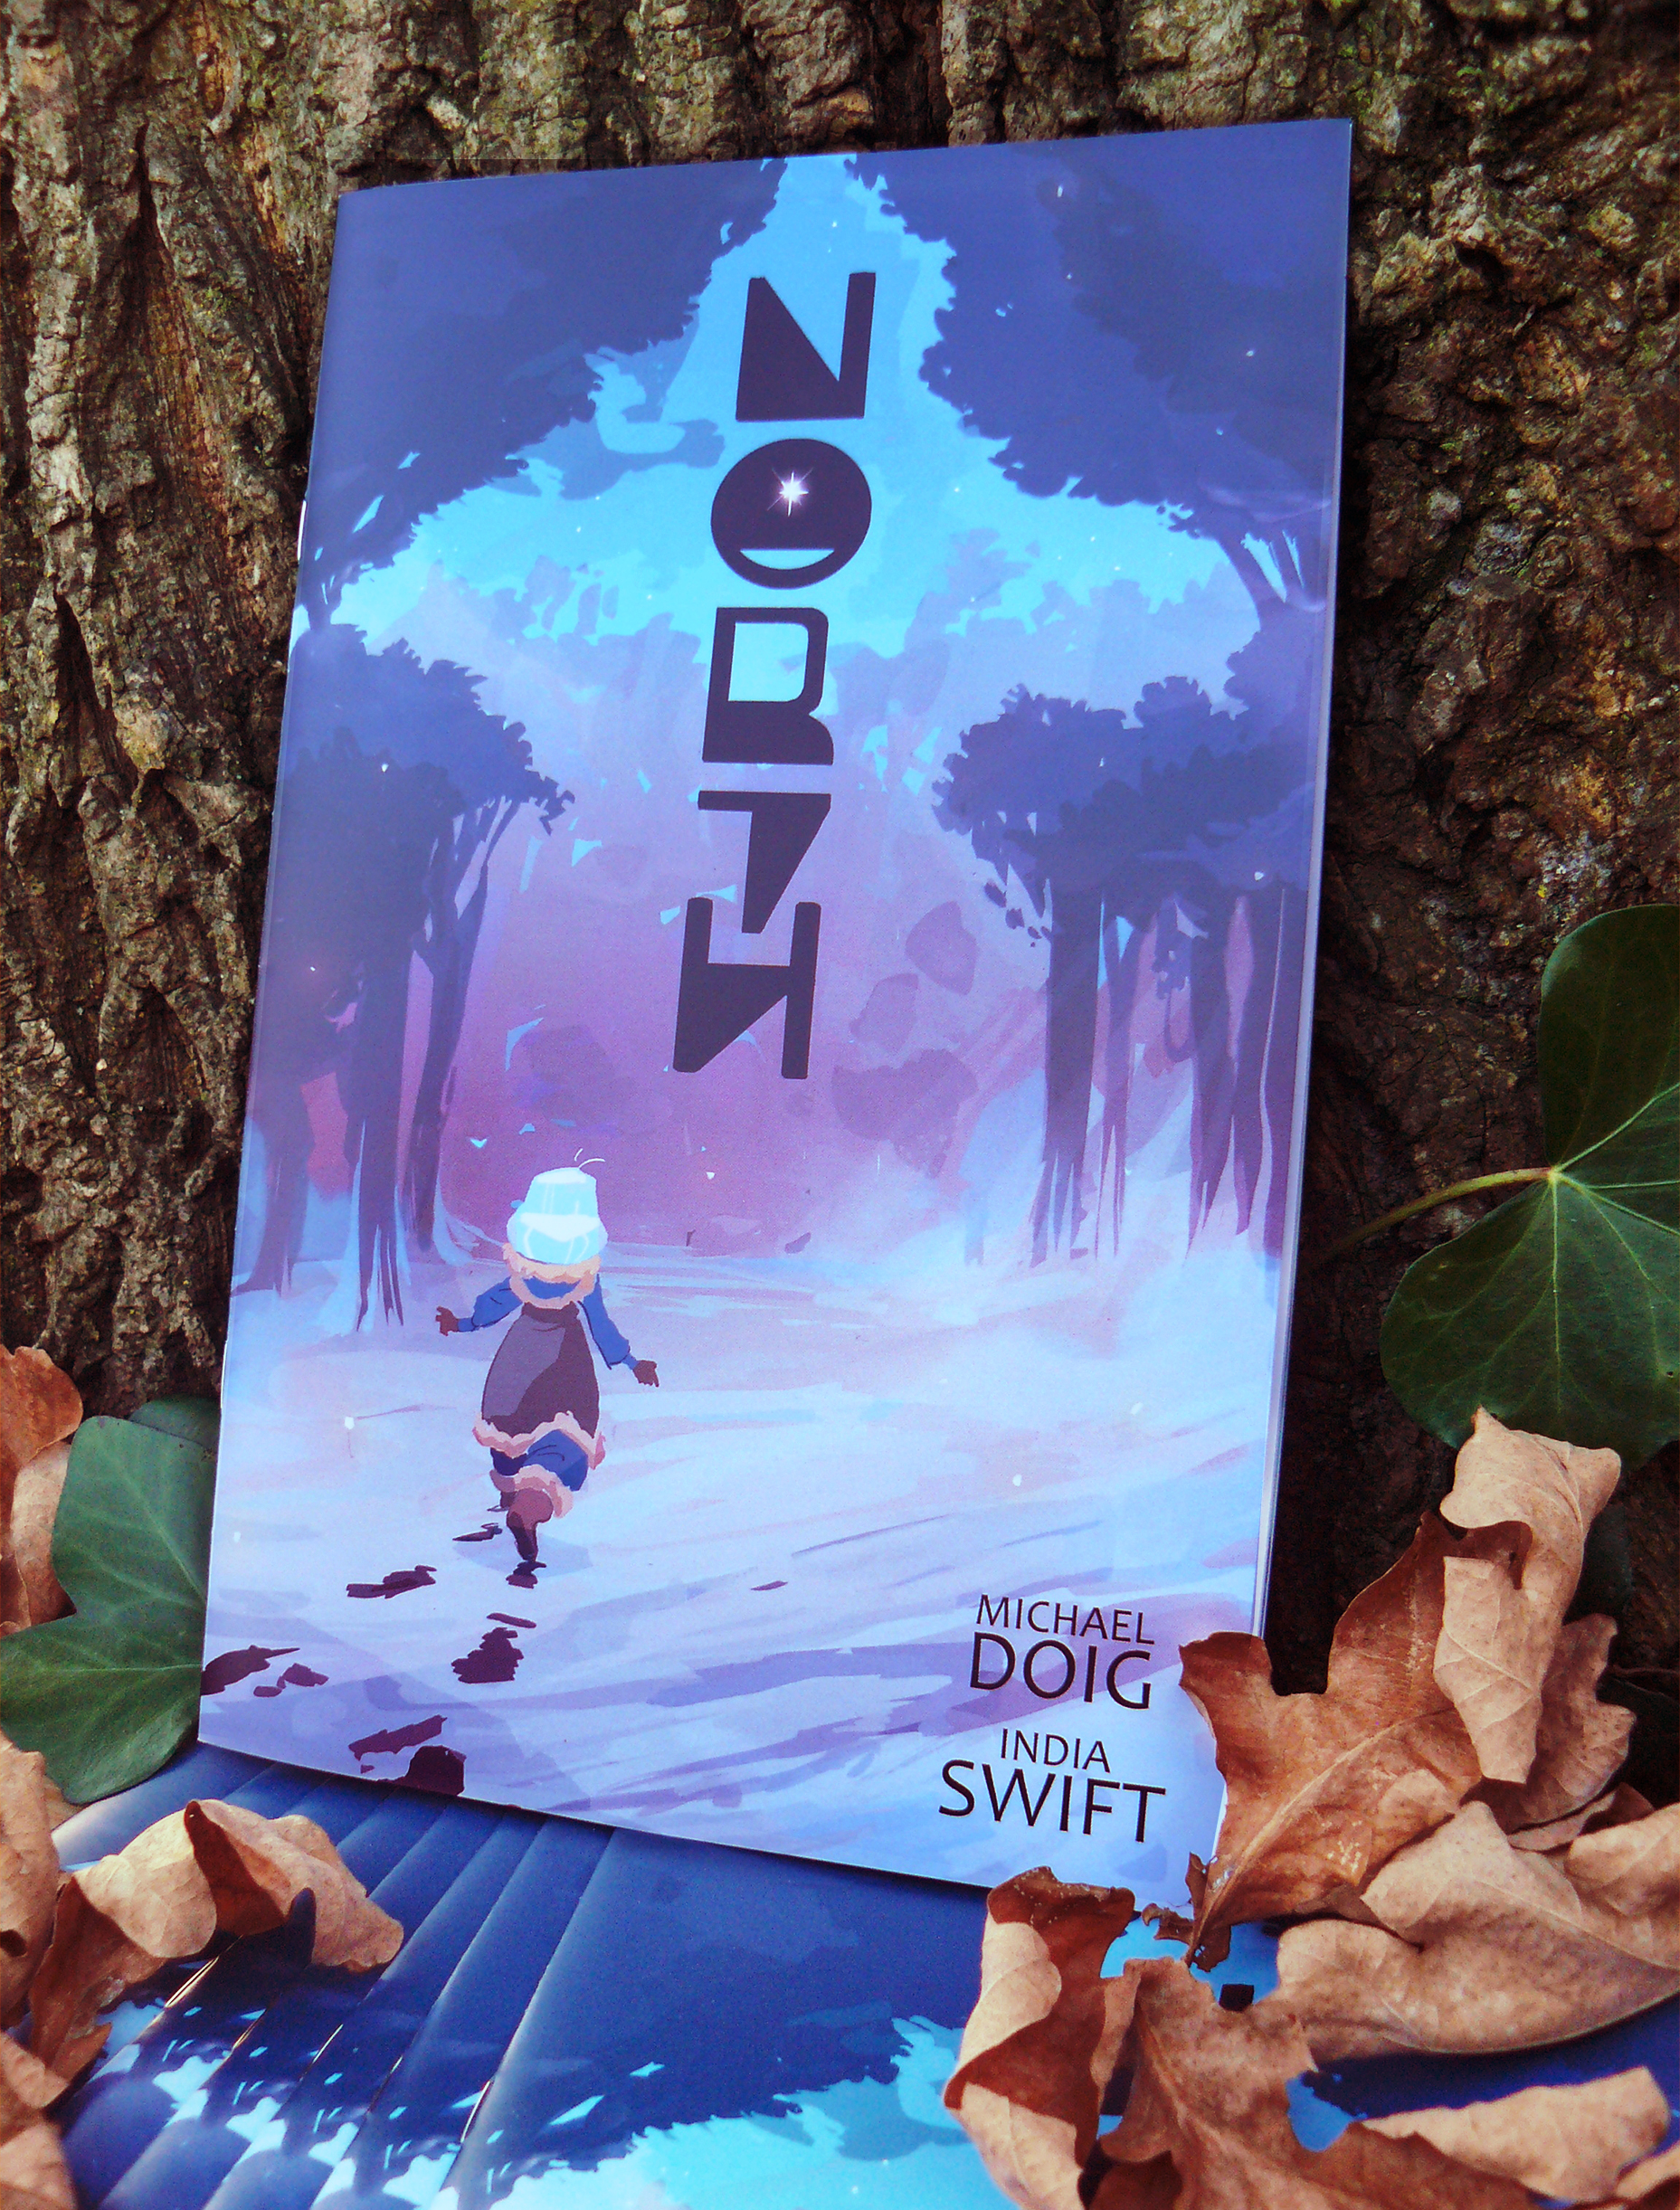 NORTH (PRINTED) - Full Colour Mini Comic(170mm x 260mm)12 pages includes 2 pages of development work.